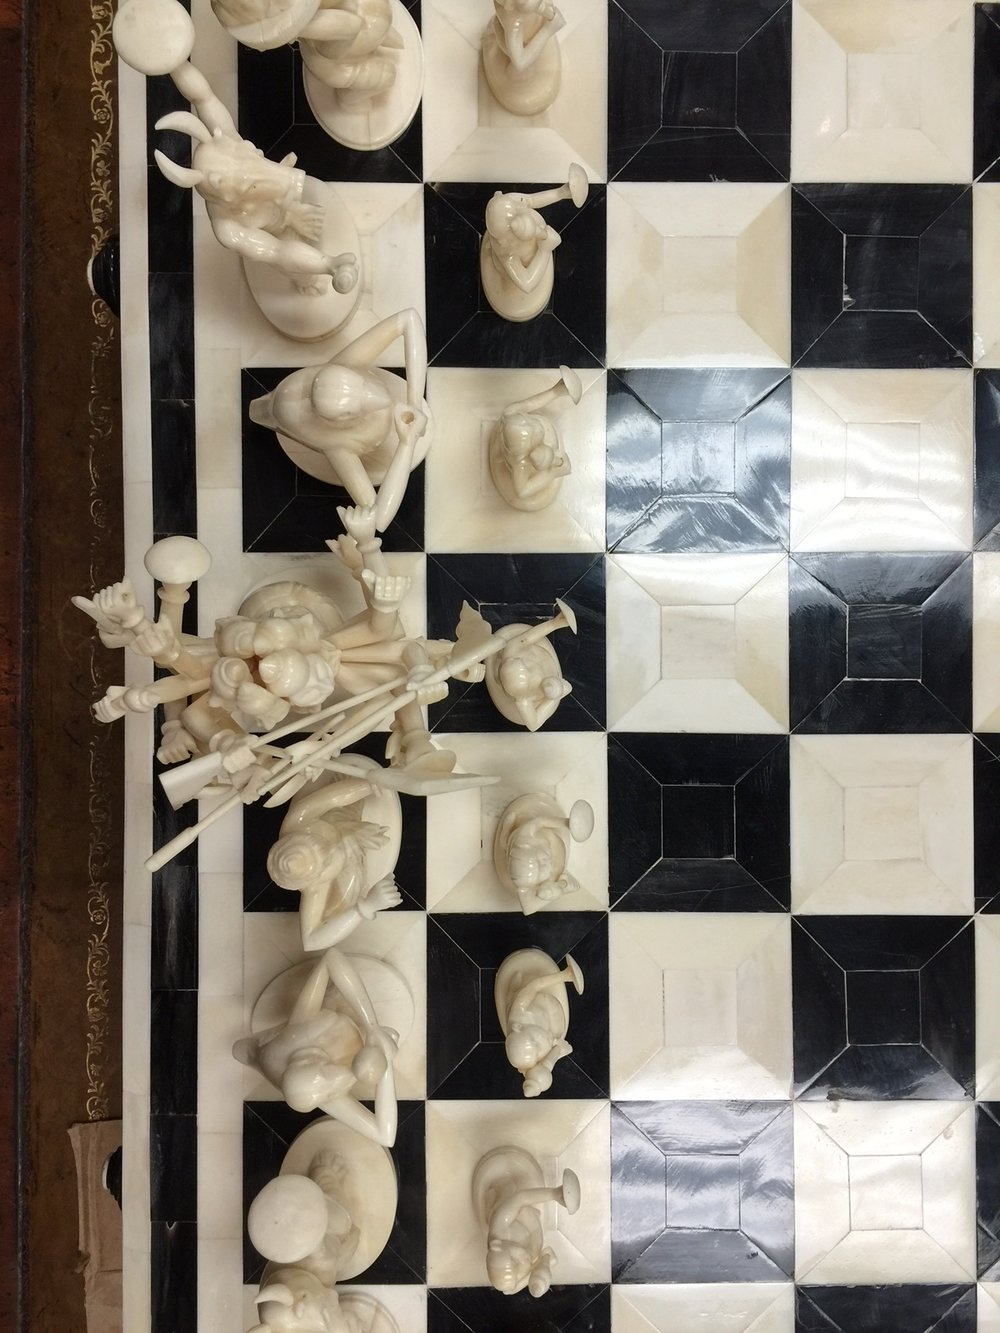 Chess set available at Simpson's Gallery's upcoming auction!